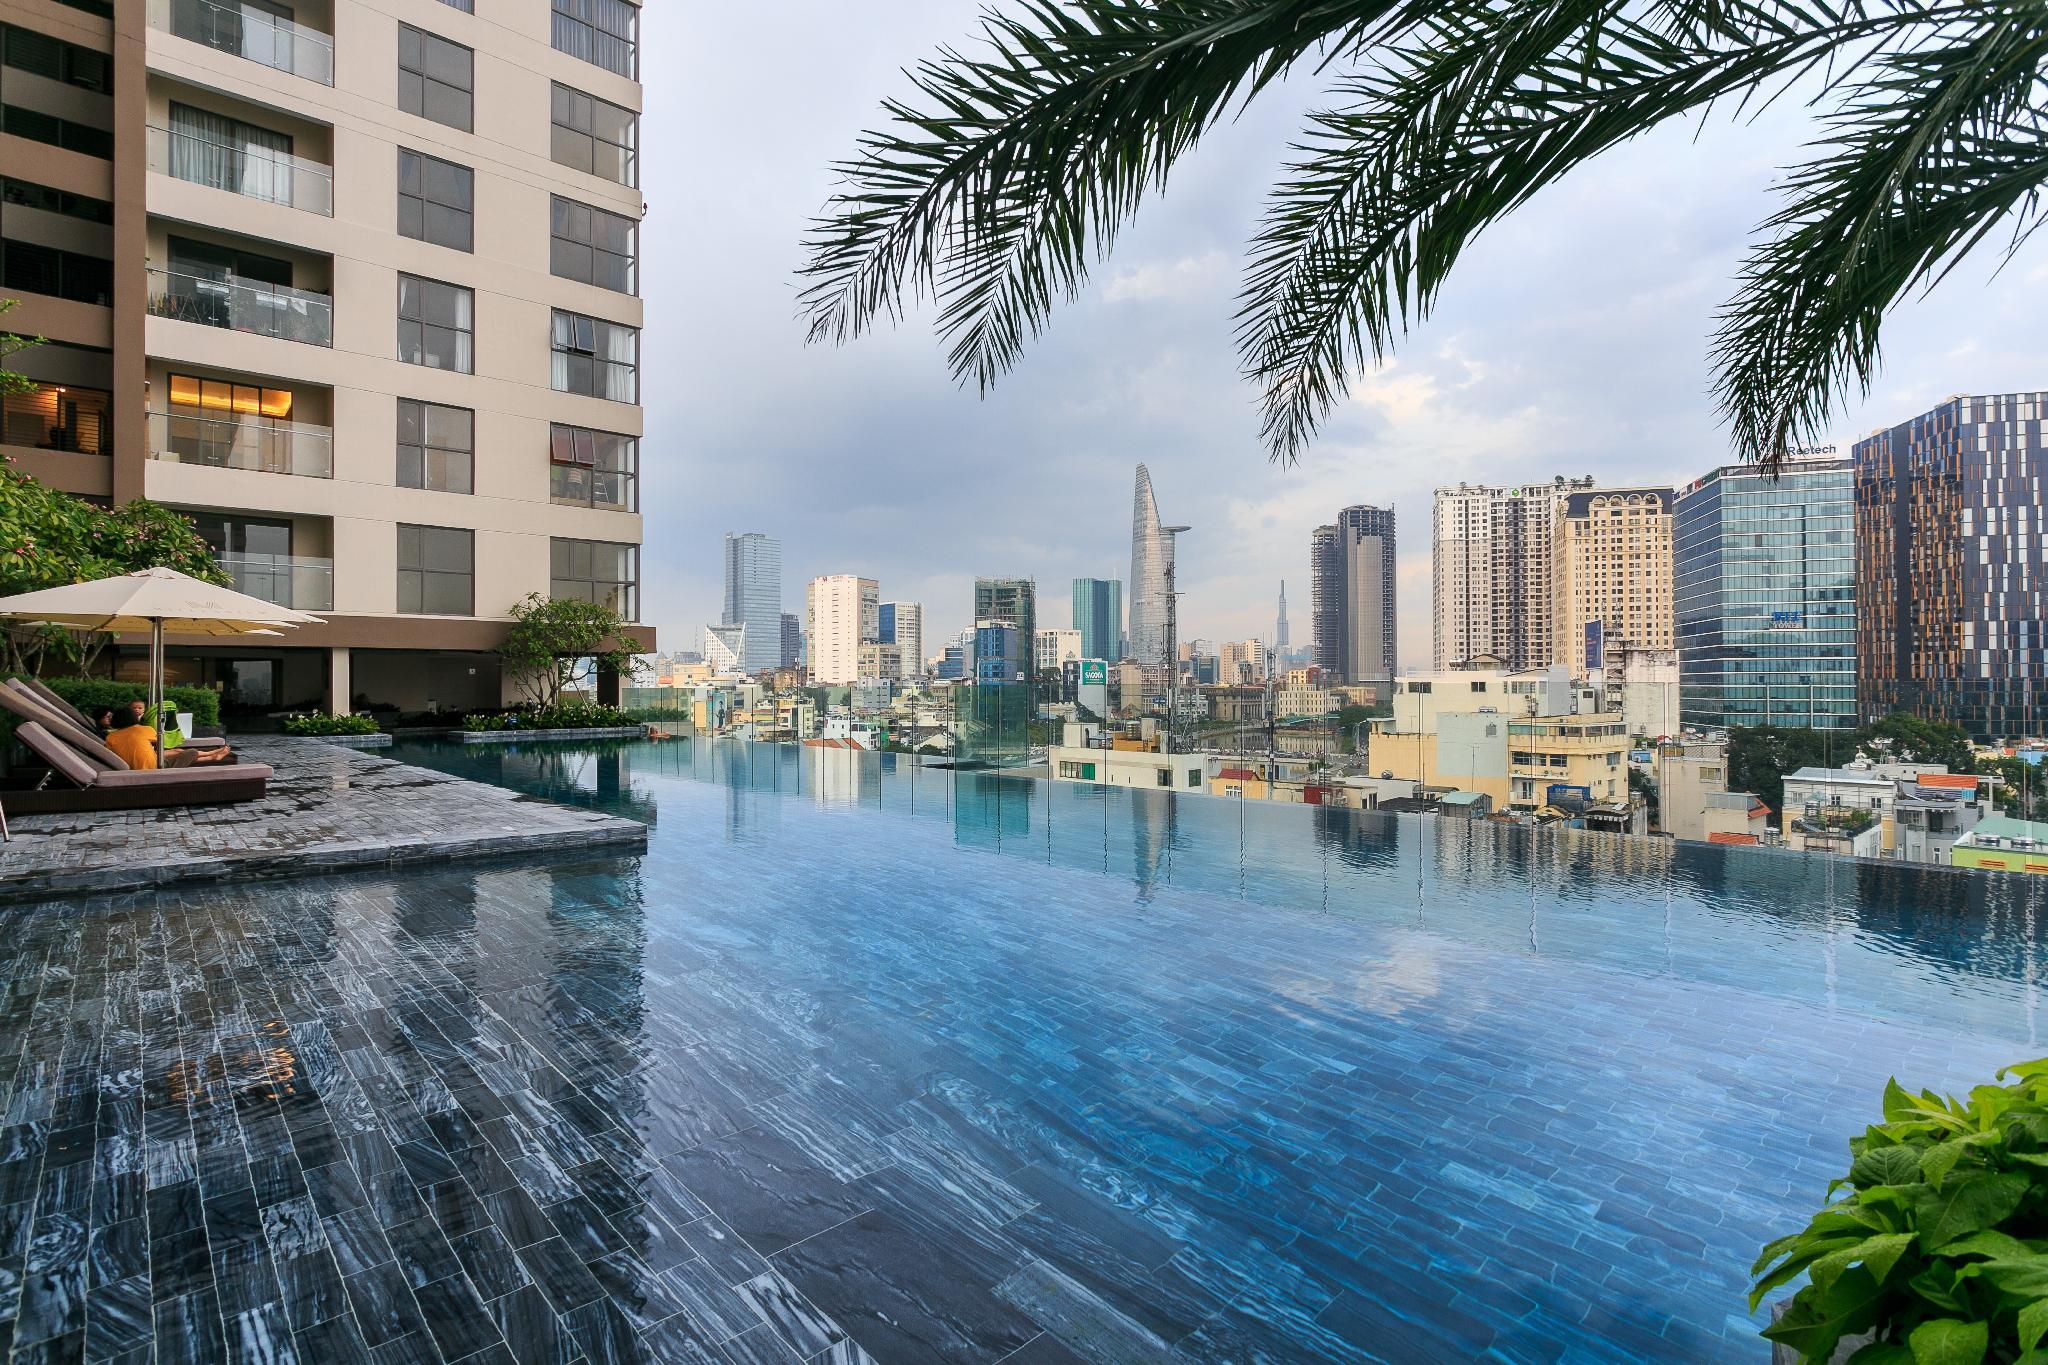 LUXURY 2 BEDROOM IN THE CENTRE   NEAR BEN THANH